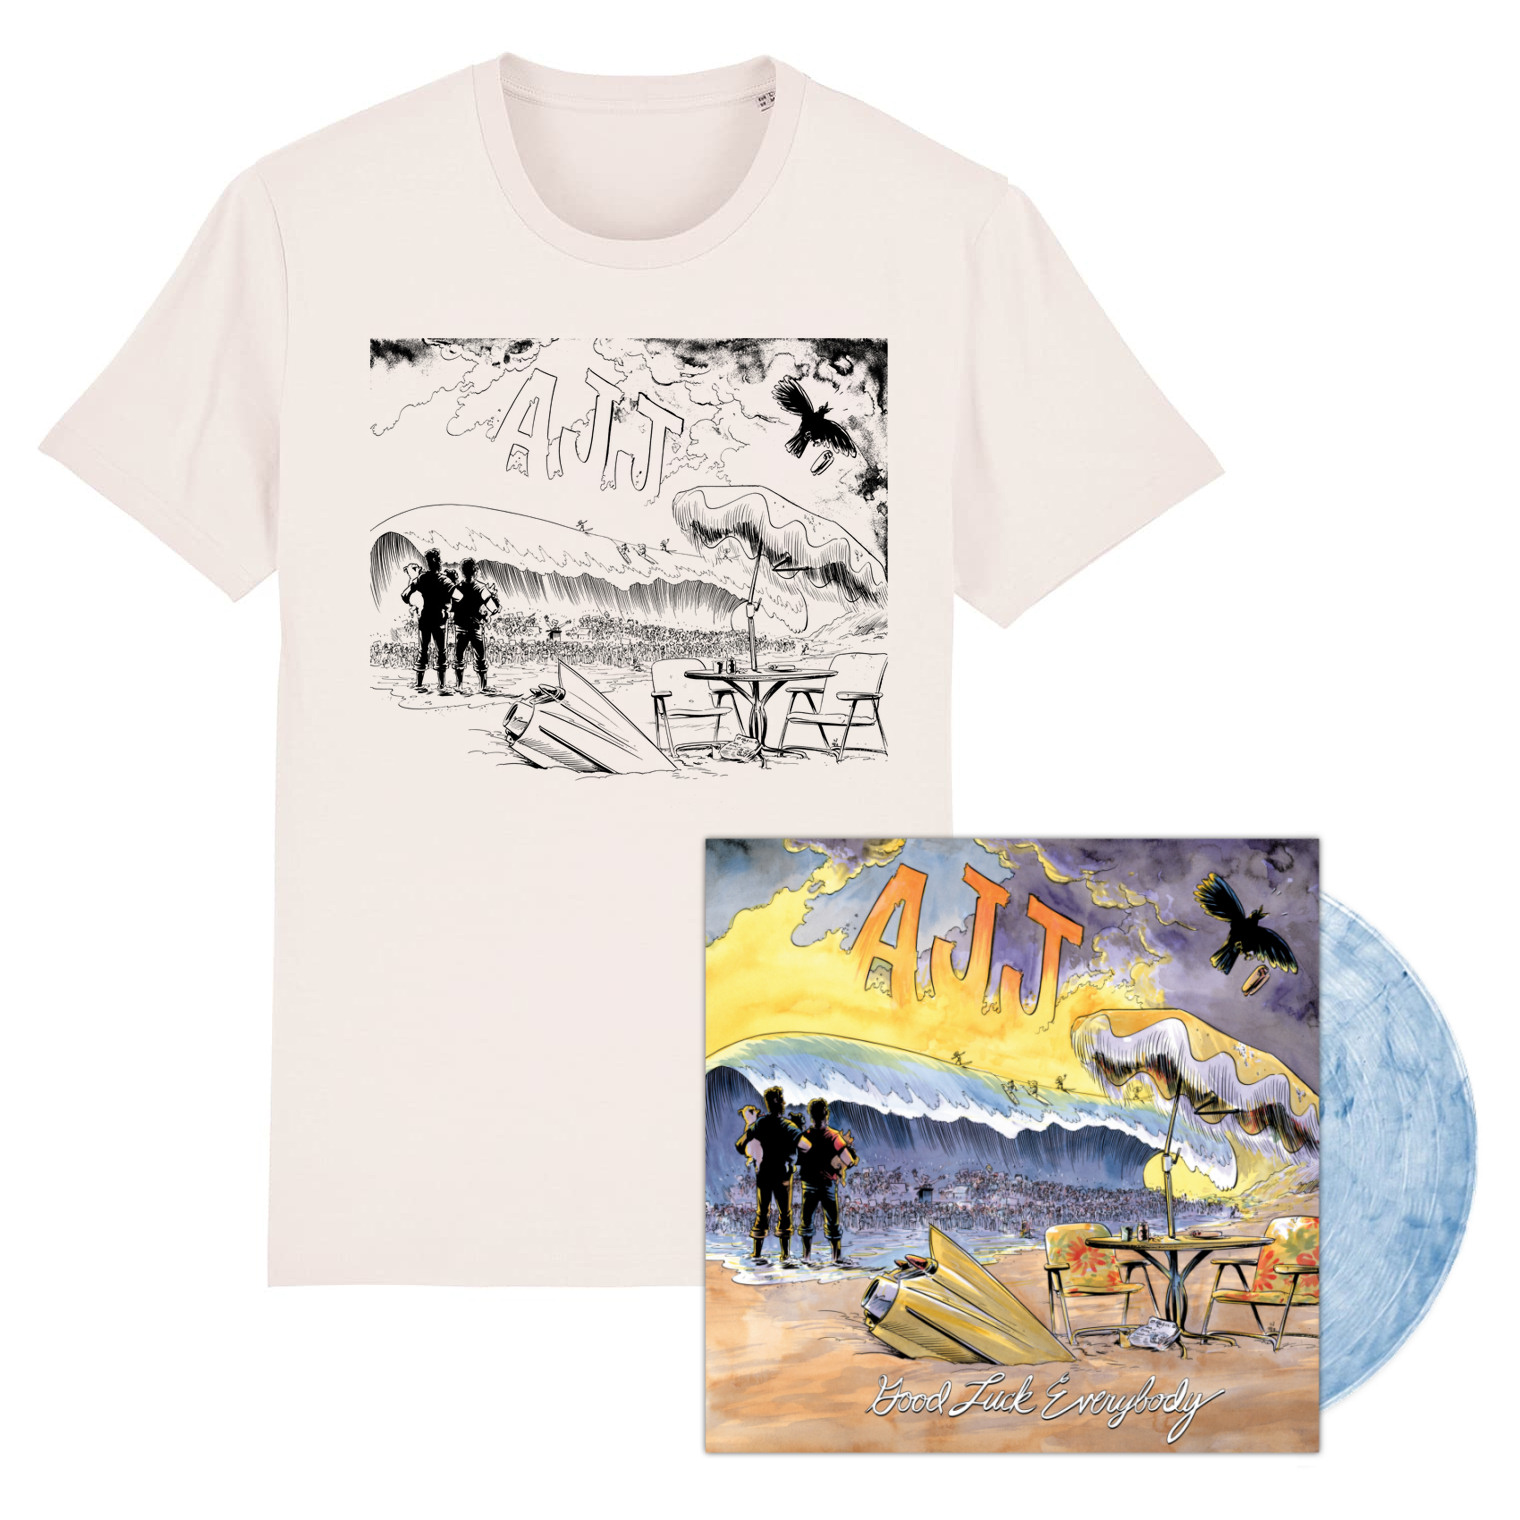 AJJ - Good Luck Everybody - LP / CD & Shirt